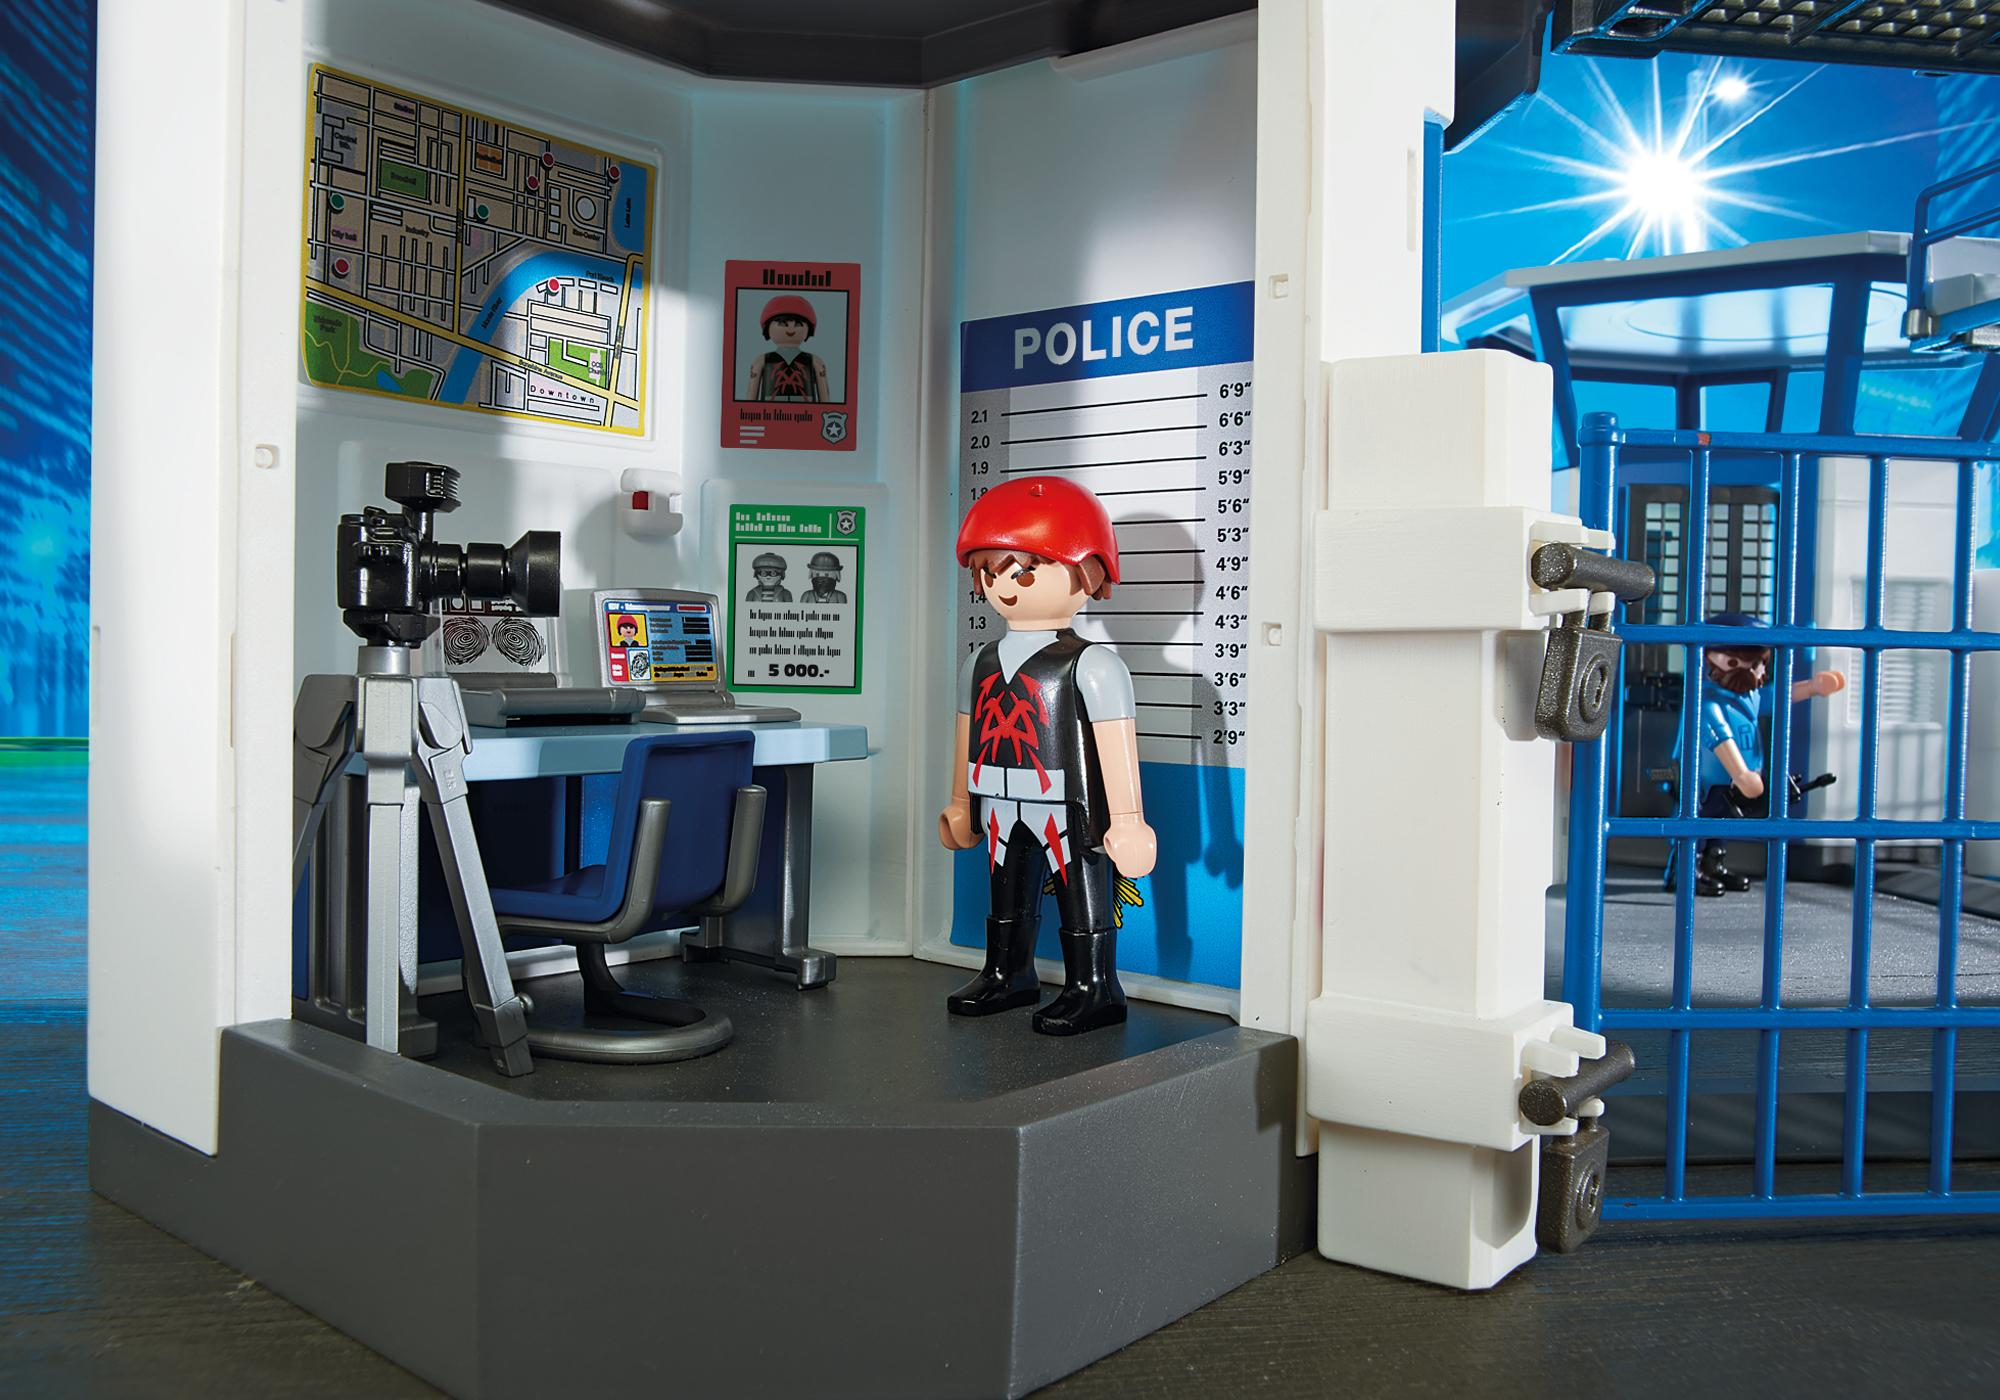 http://media.playmobil.com/i/playmobil/6919_product_extra2/Police Headquarters with Prison